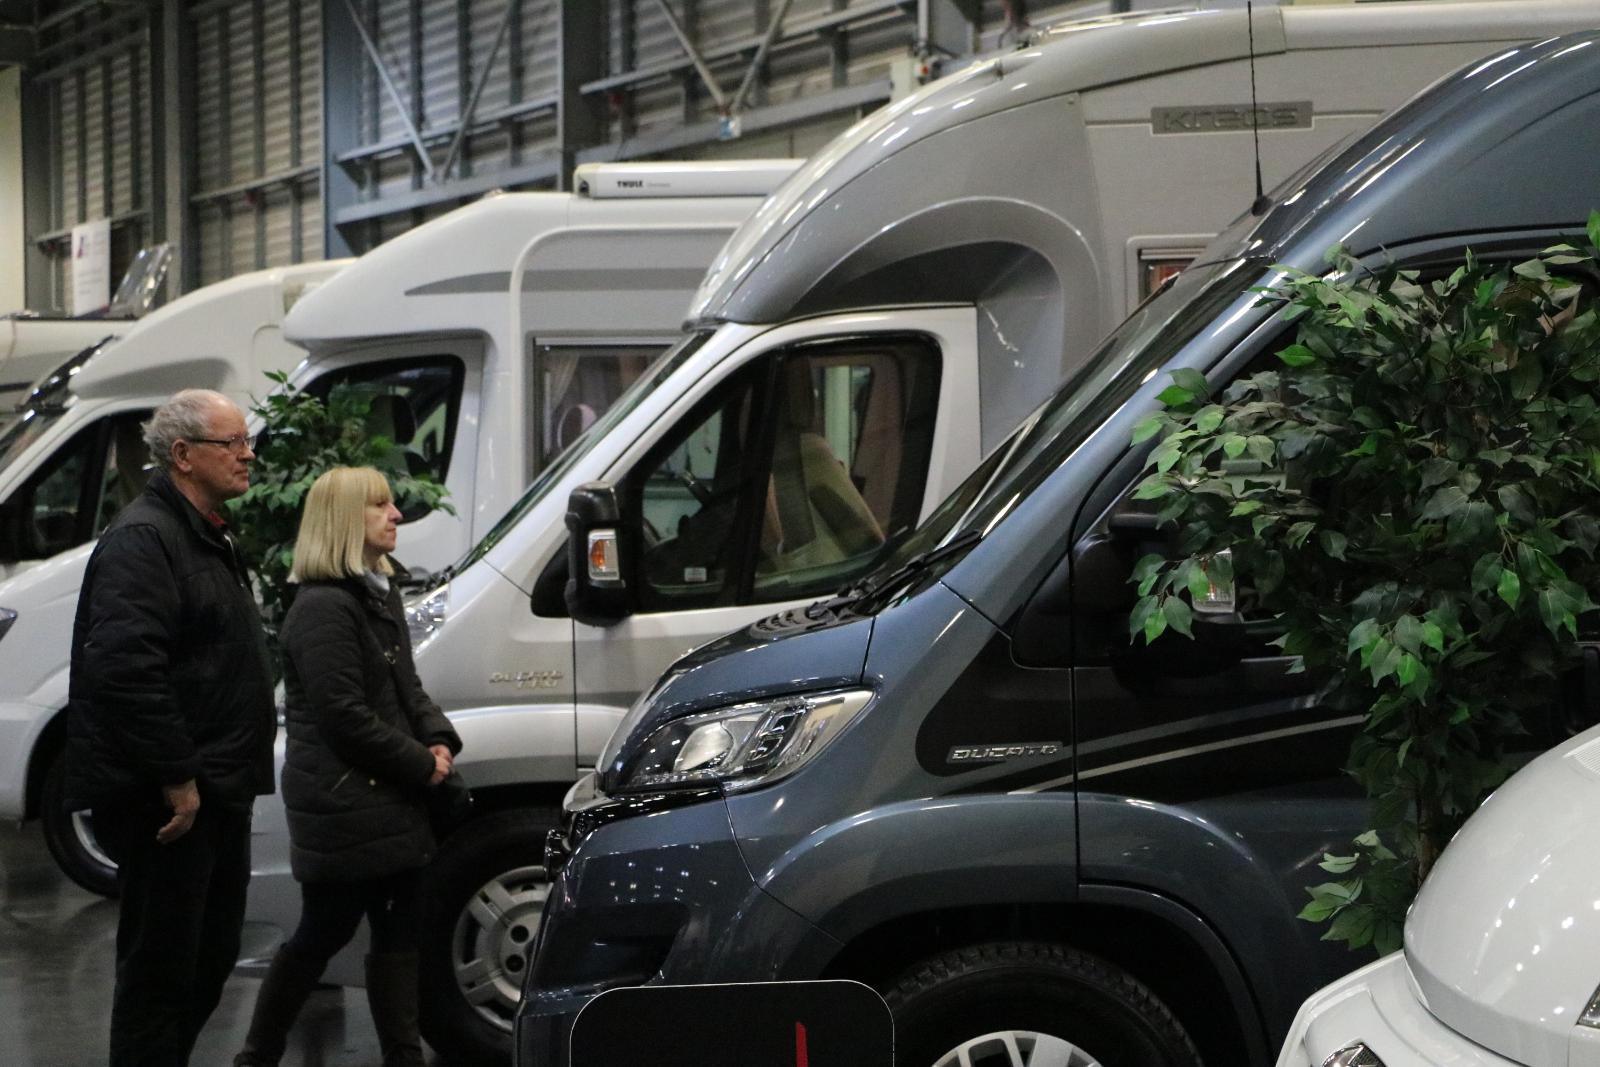 2021 winter motorhome sale to go ahead at East of England Arena & Events Centre